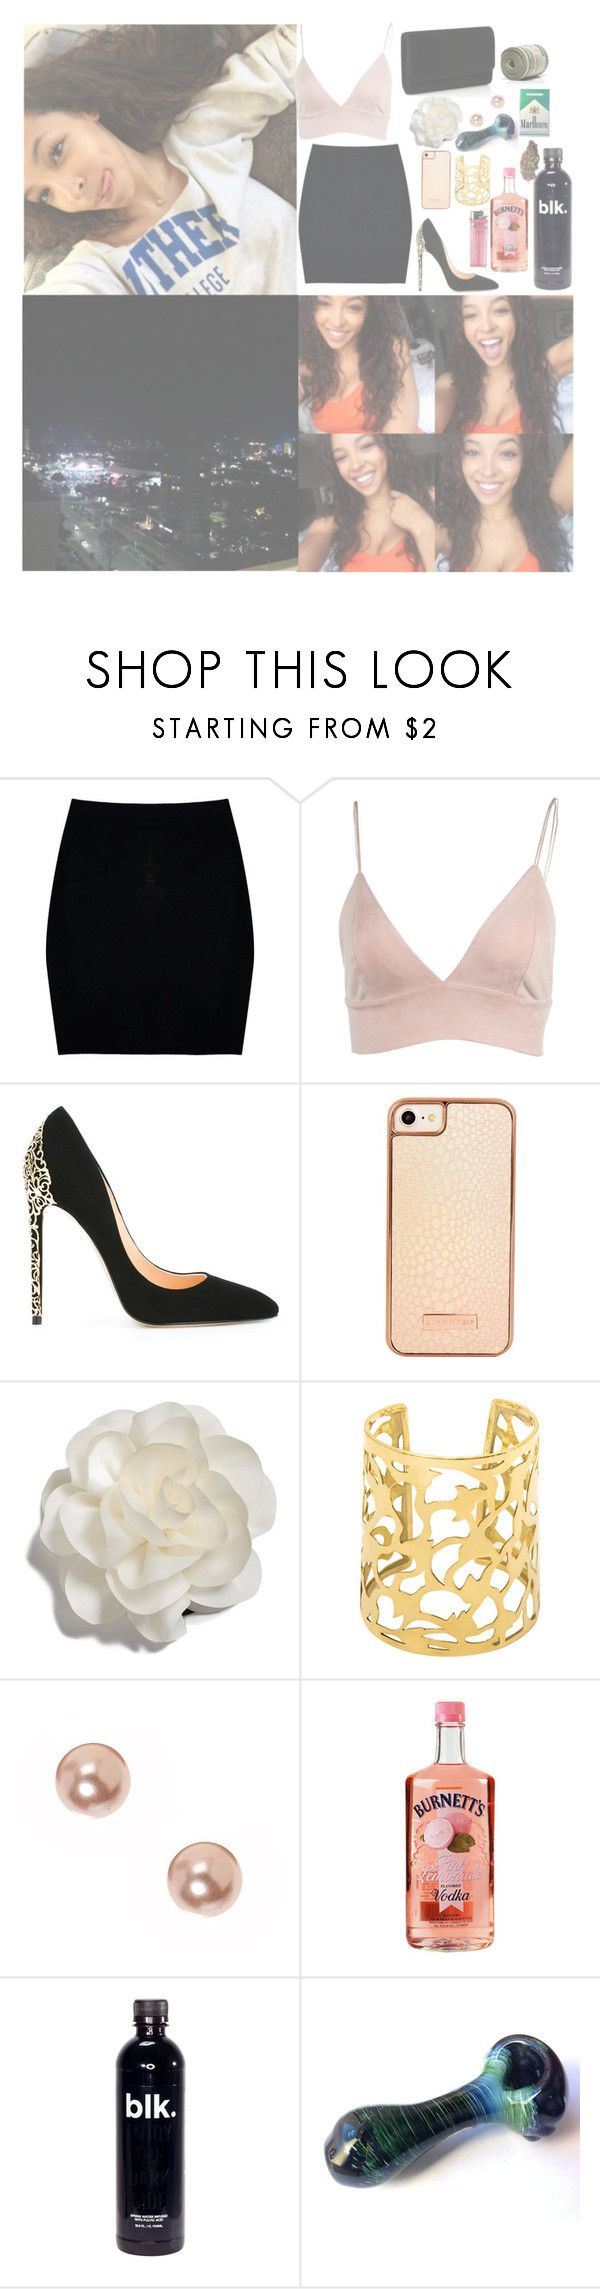 """""""Alicia"""" by musickilledme ❤ liked on Polyvore featuring Boohoo, Cerasella Milano, Skinnydip, Cara and claire's"""